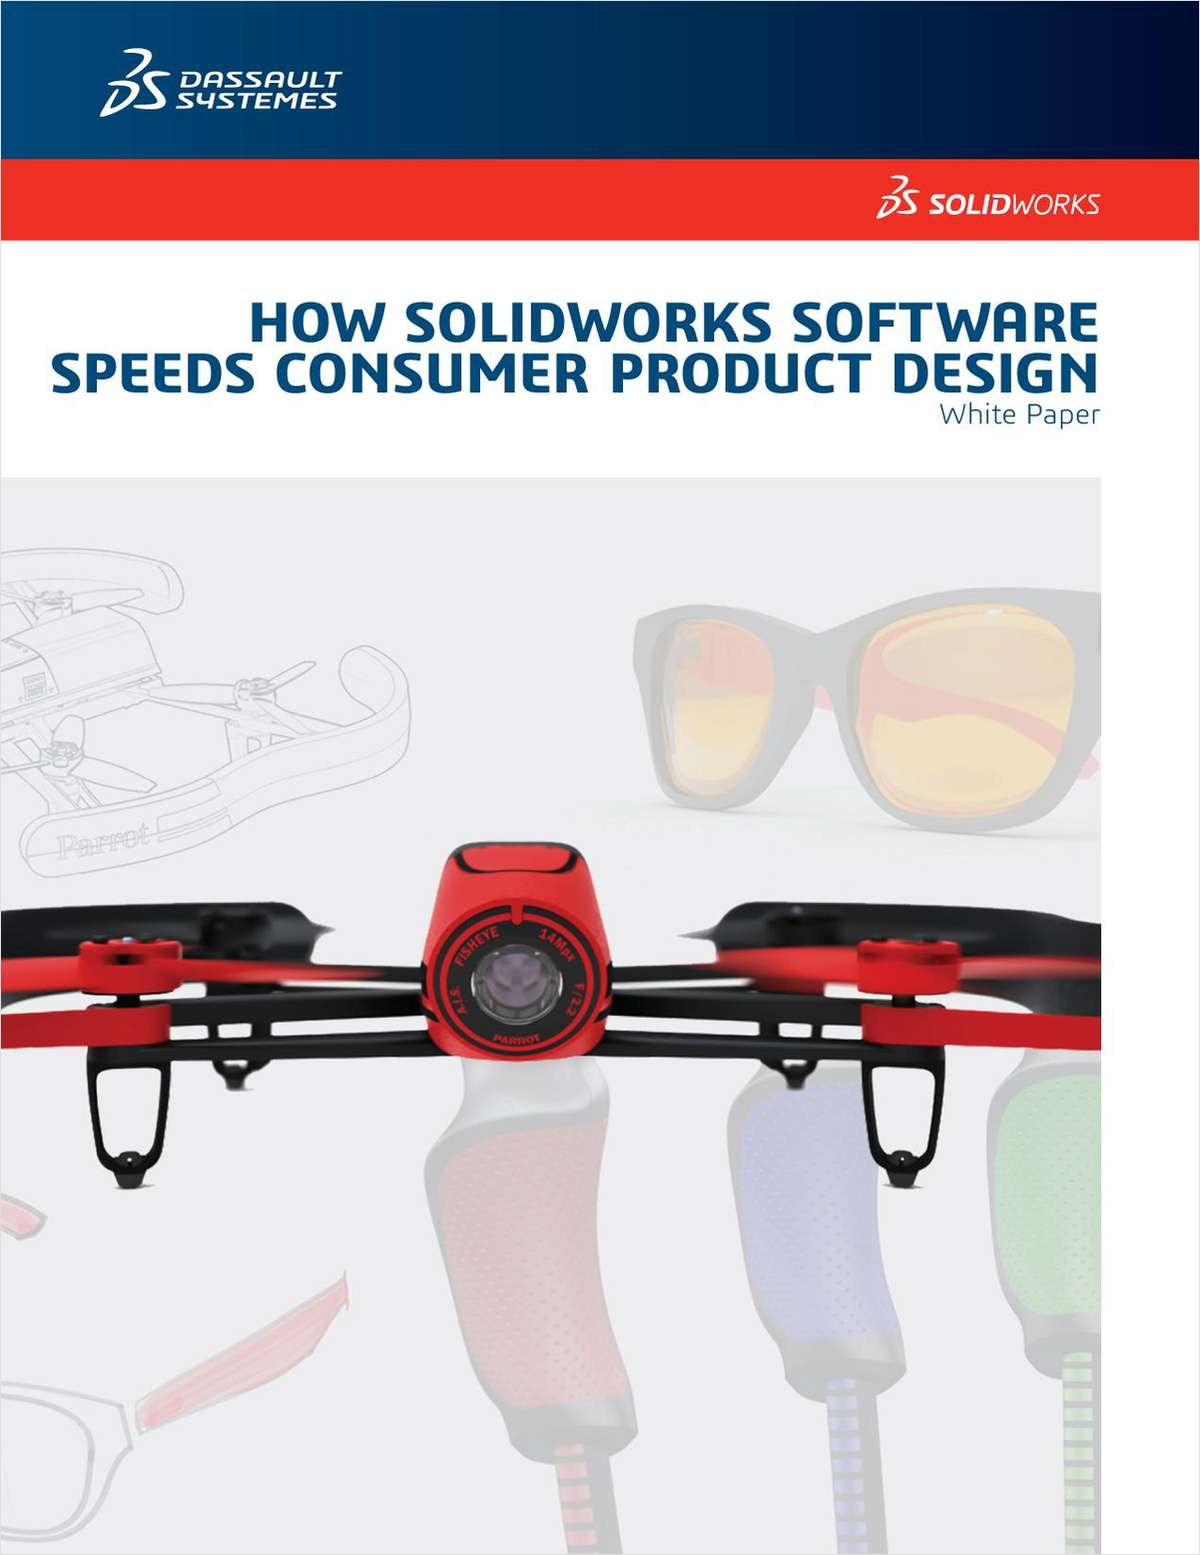 How Design for Manufacturability Tools Help Deliver Problem-Free Design